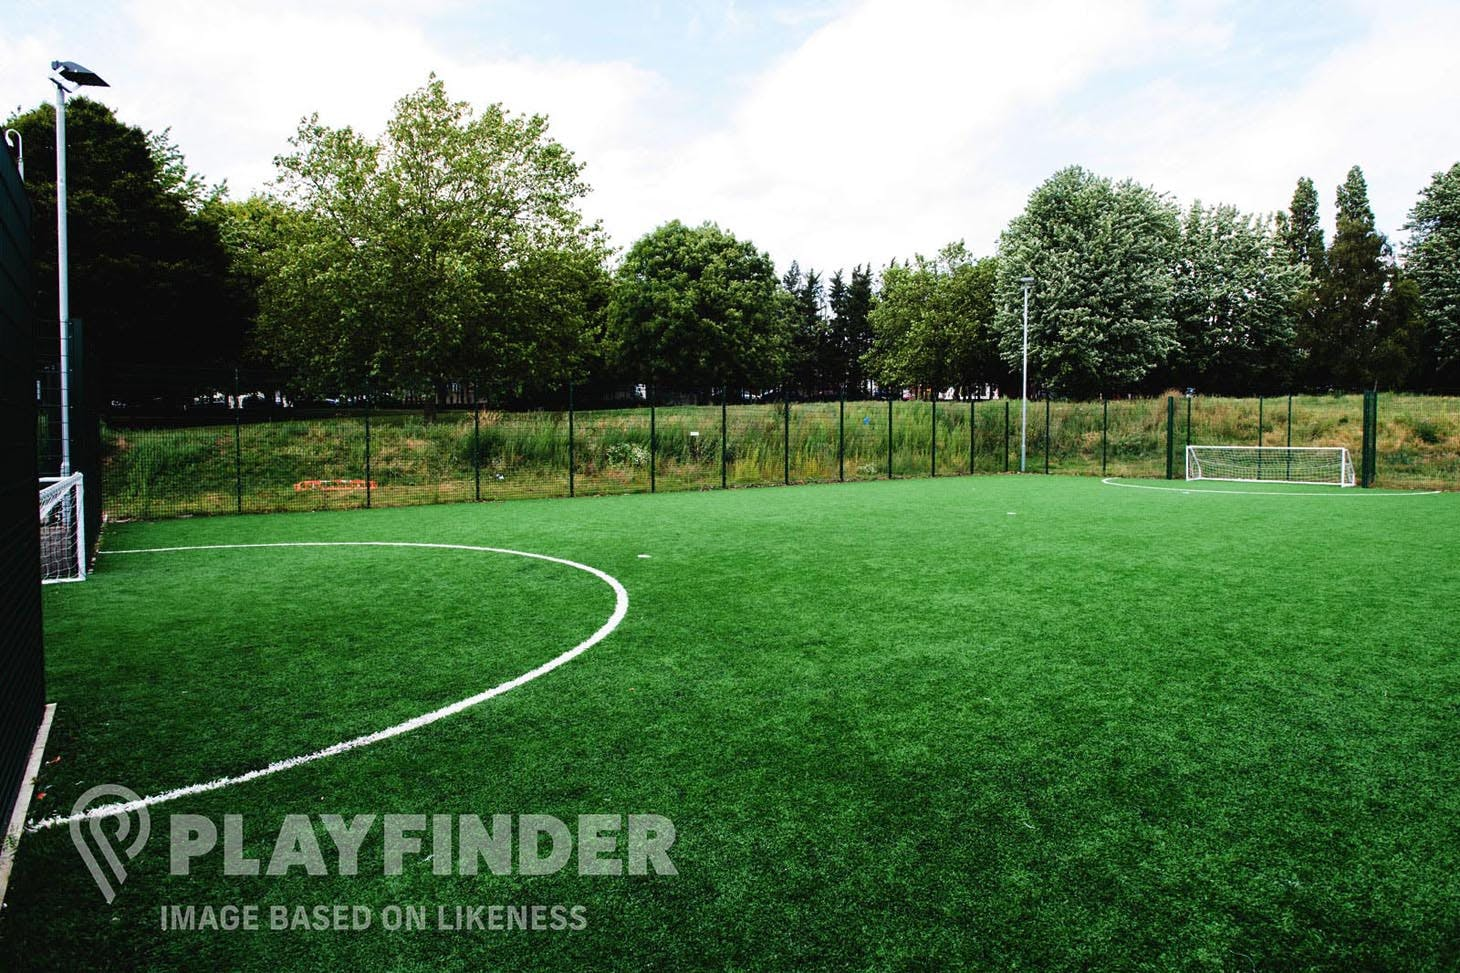 Goals Birmingham Star City 5 a side | 3G Astroturf football pitch